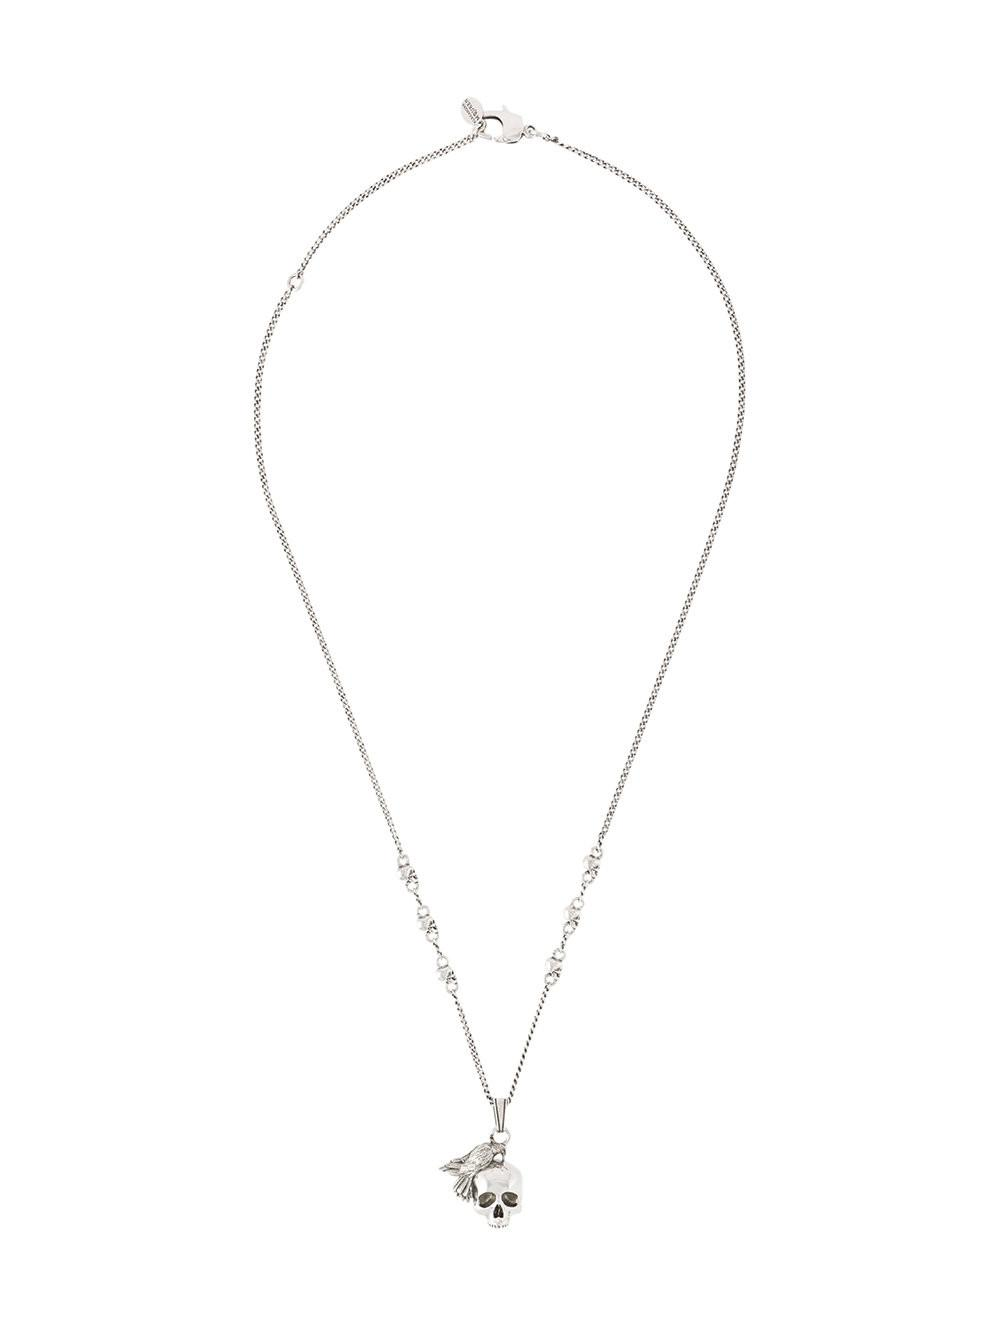 574631fbb78a9 Men's Metallic Skull And Bird Charm Necklace